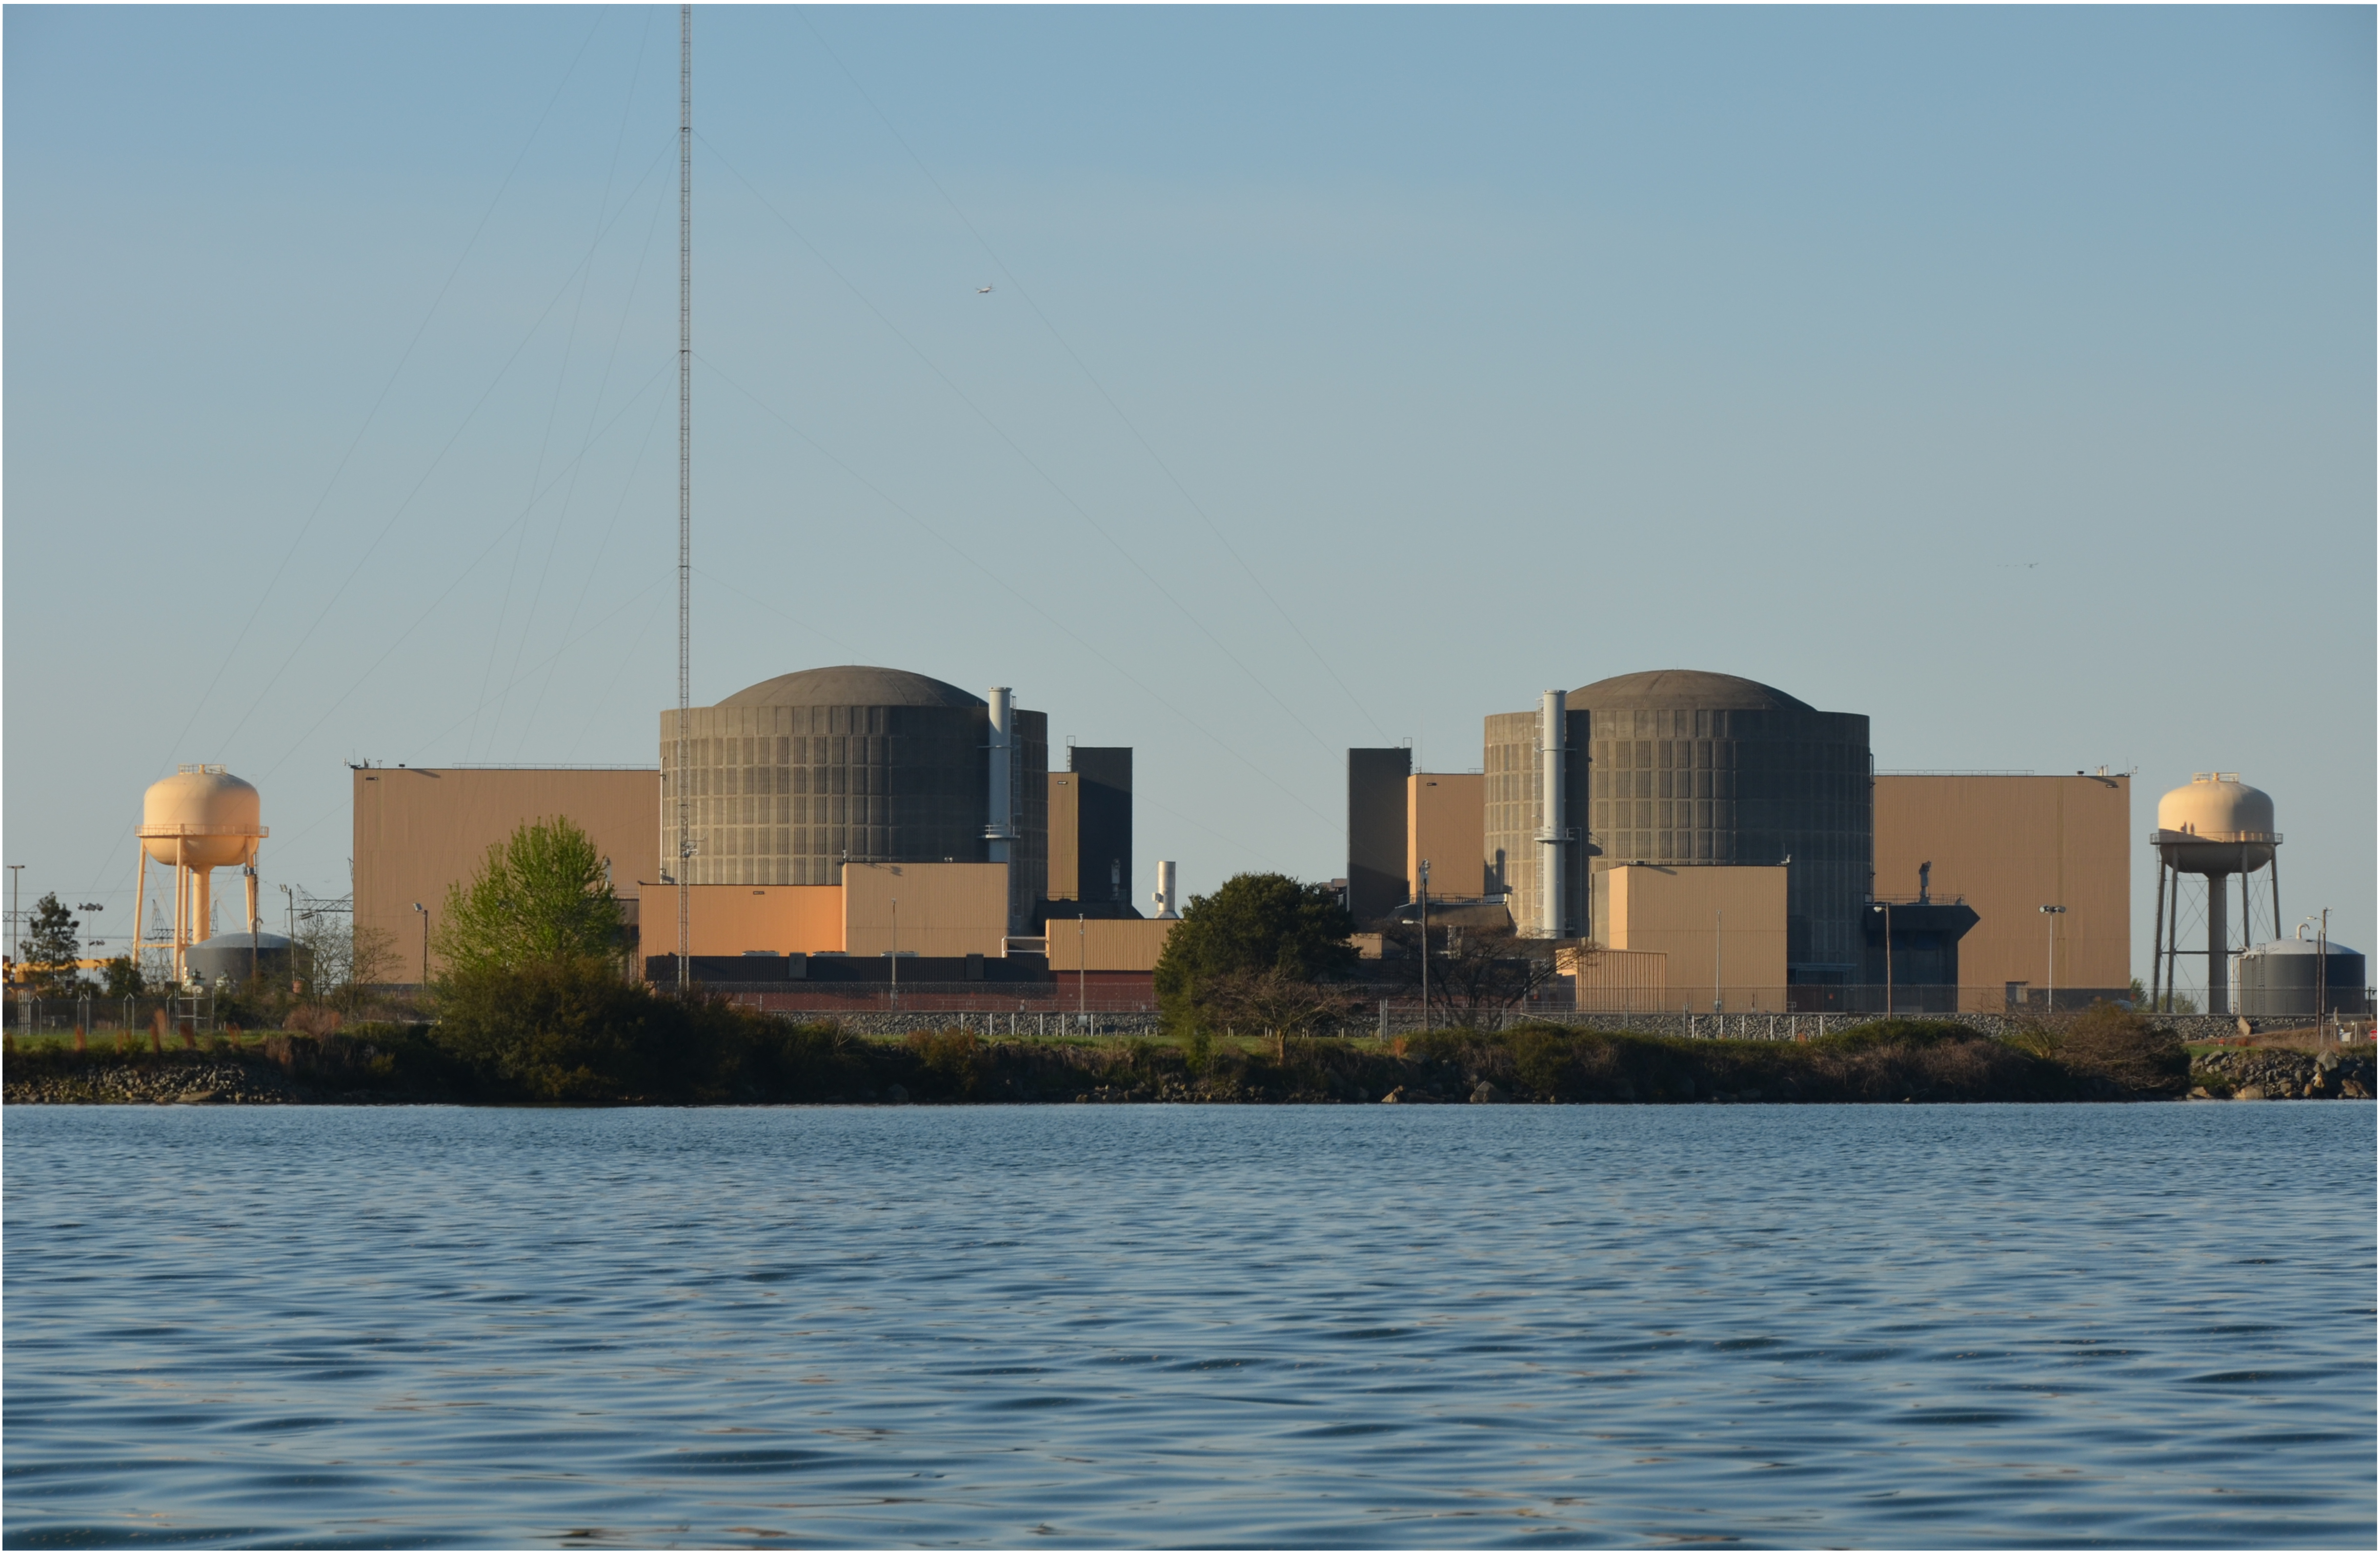 McGuire Nuclear plant as seen from the lake